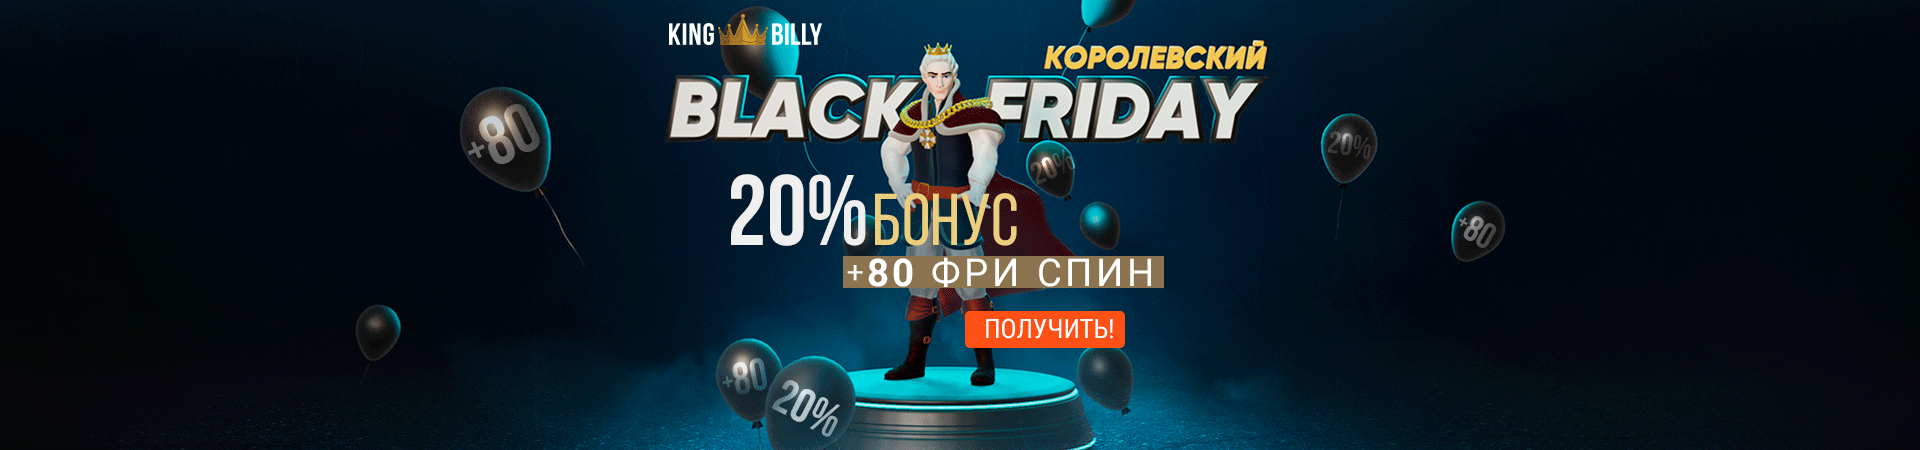 2020 11 King Billy Russian Black Friday 1920x450